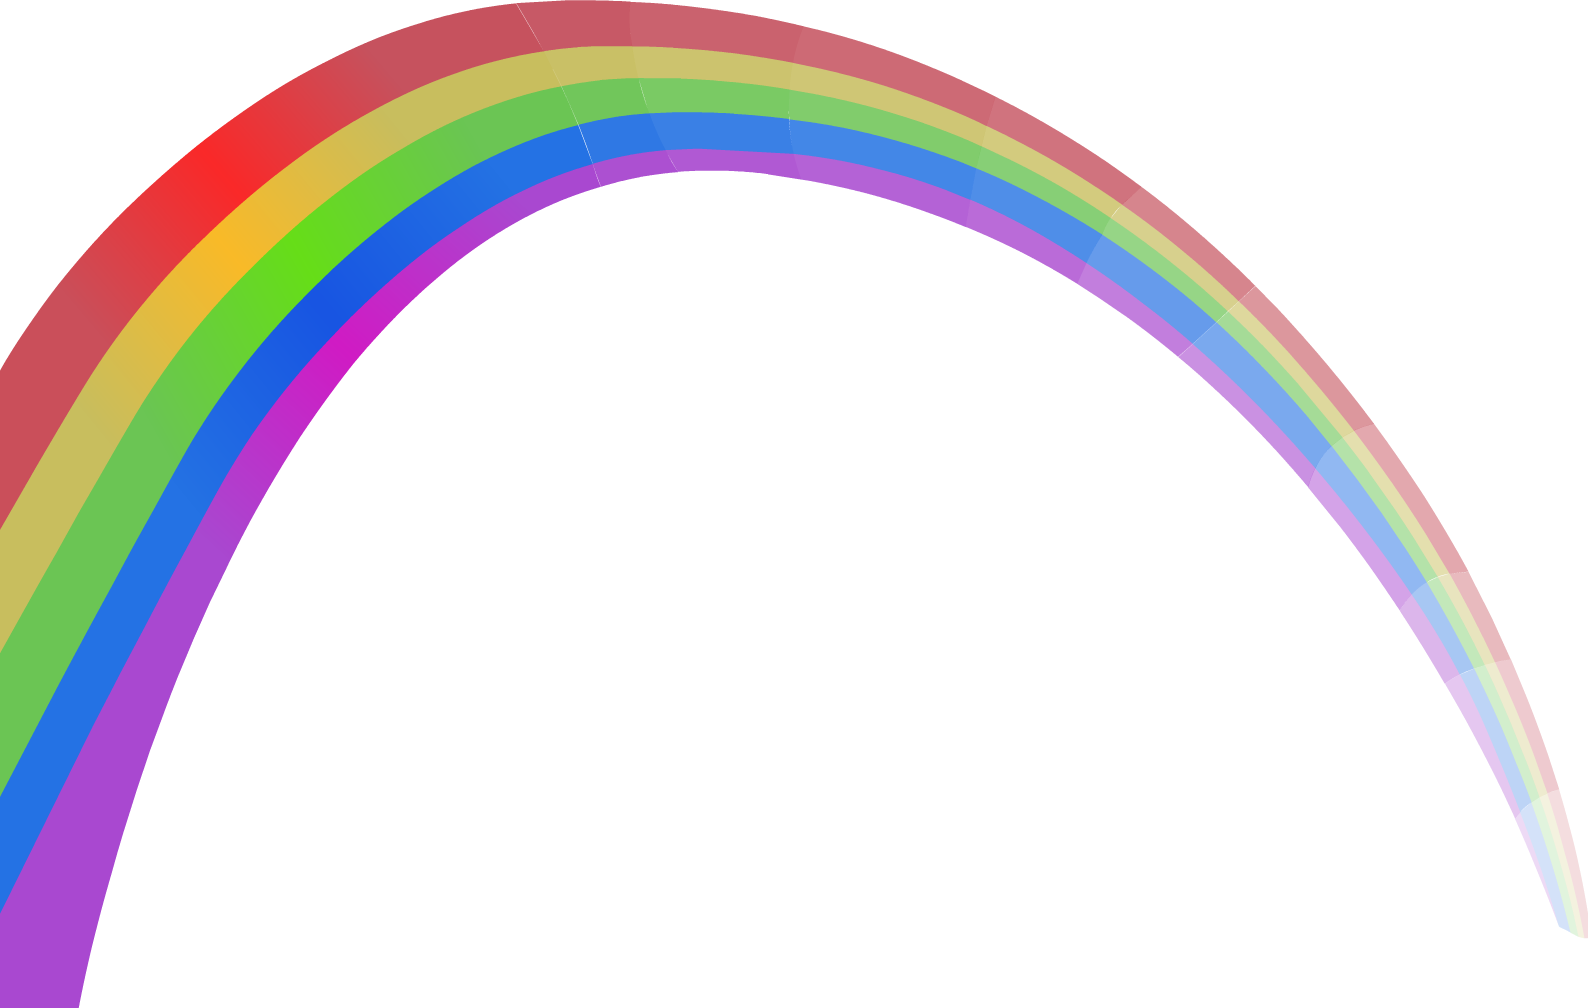 Rainbow png files. Image mountain of misery